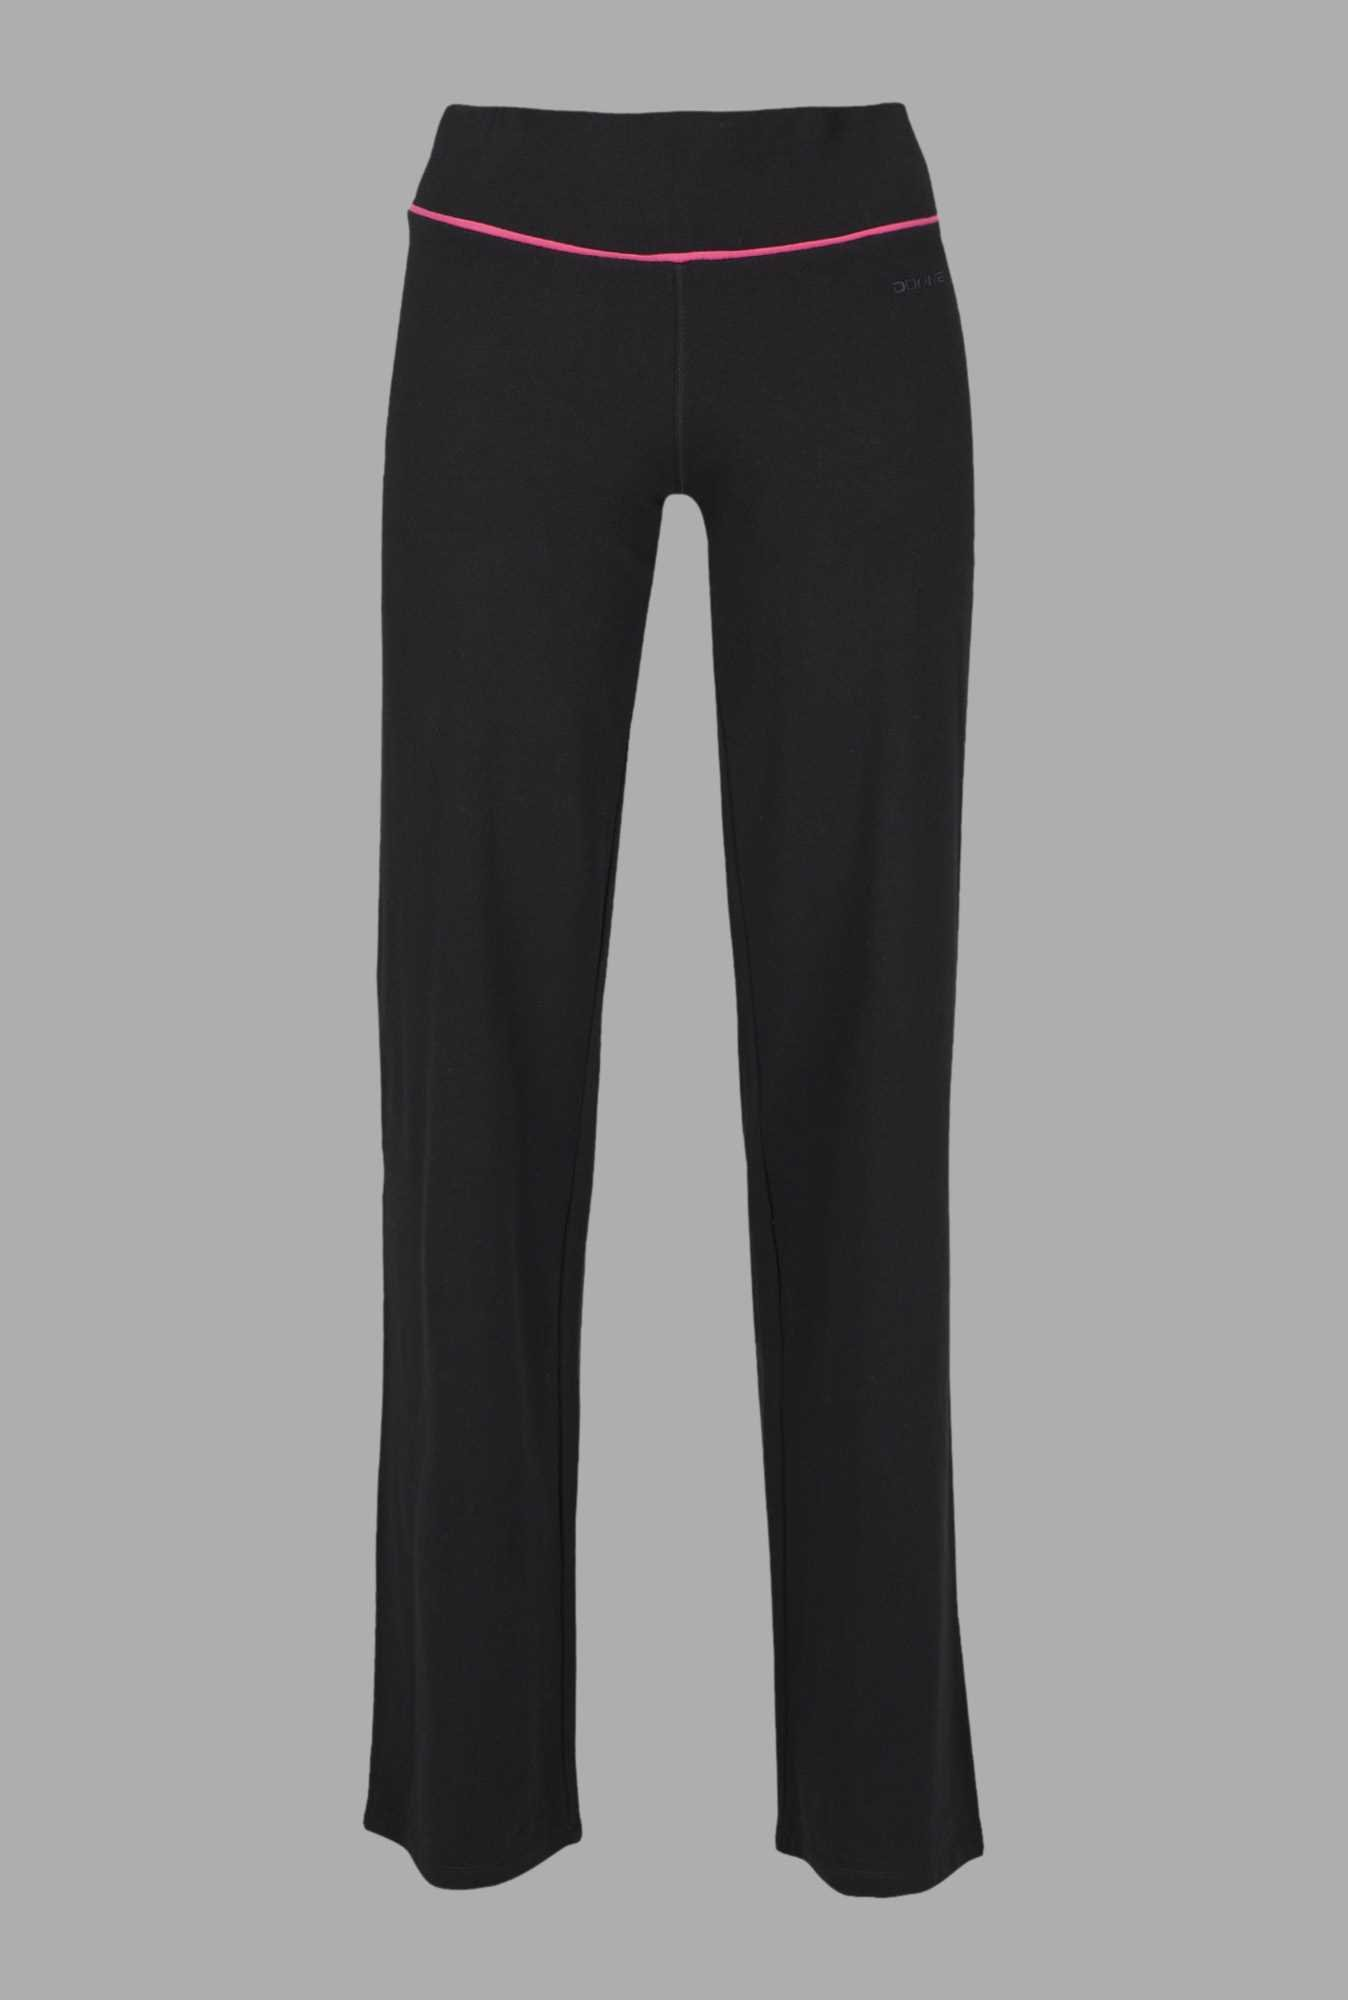 Doone Black Solid Training Trackpants